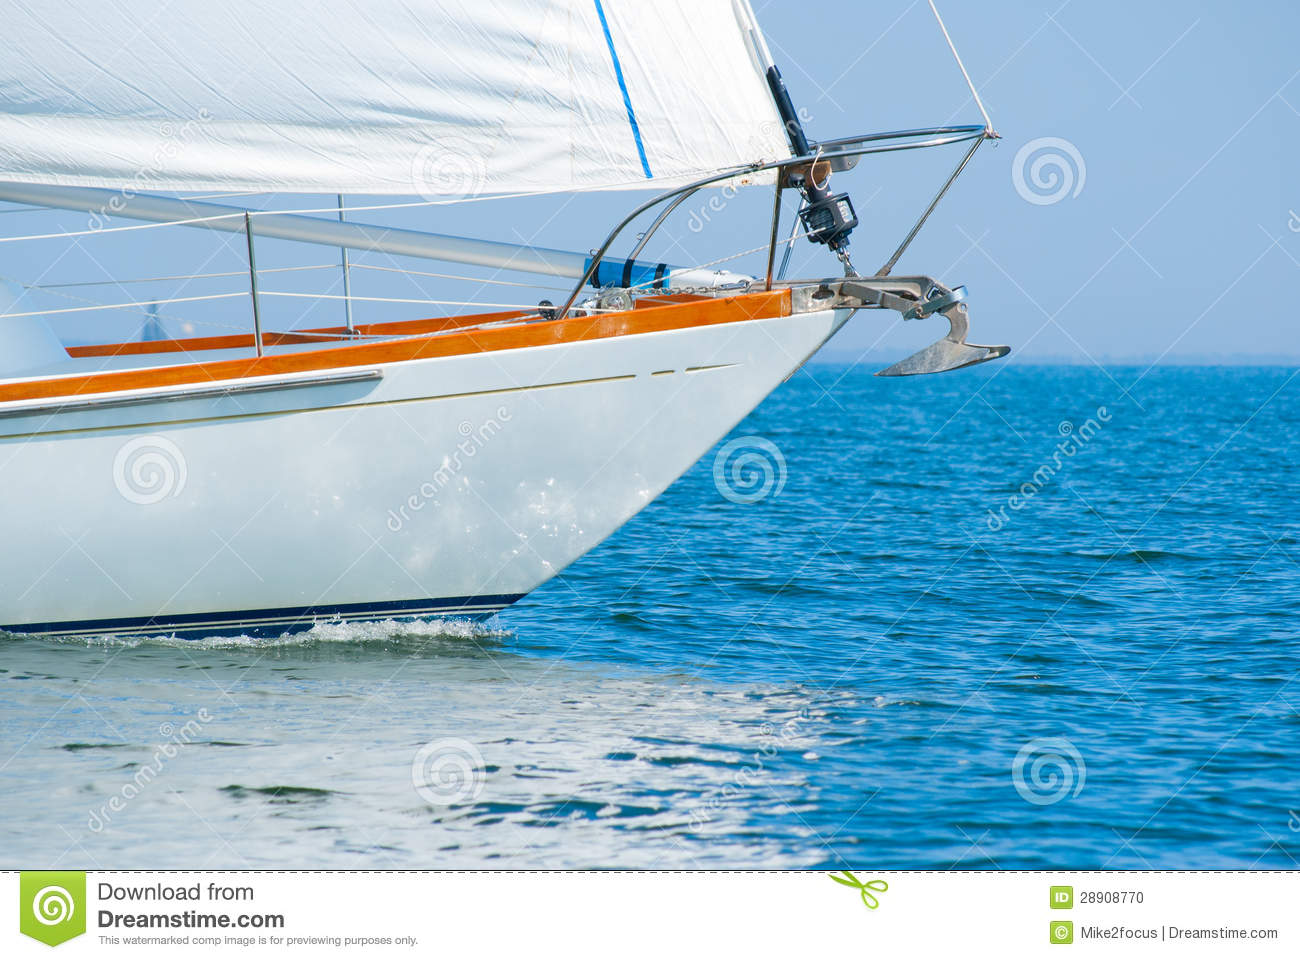 Bow Of A Beautiful Sailboat In The Water Stock Photo - Image: 28908770